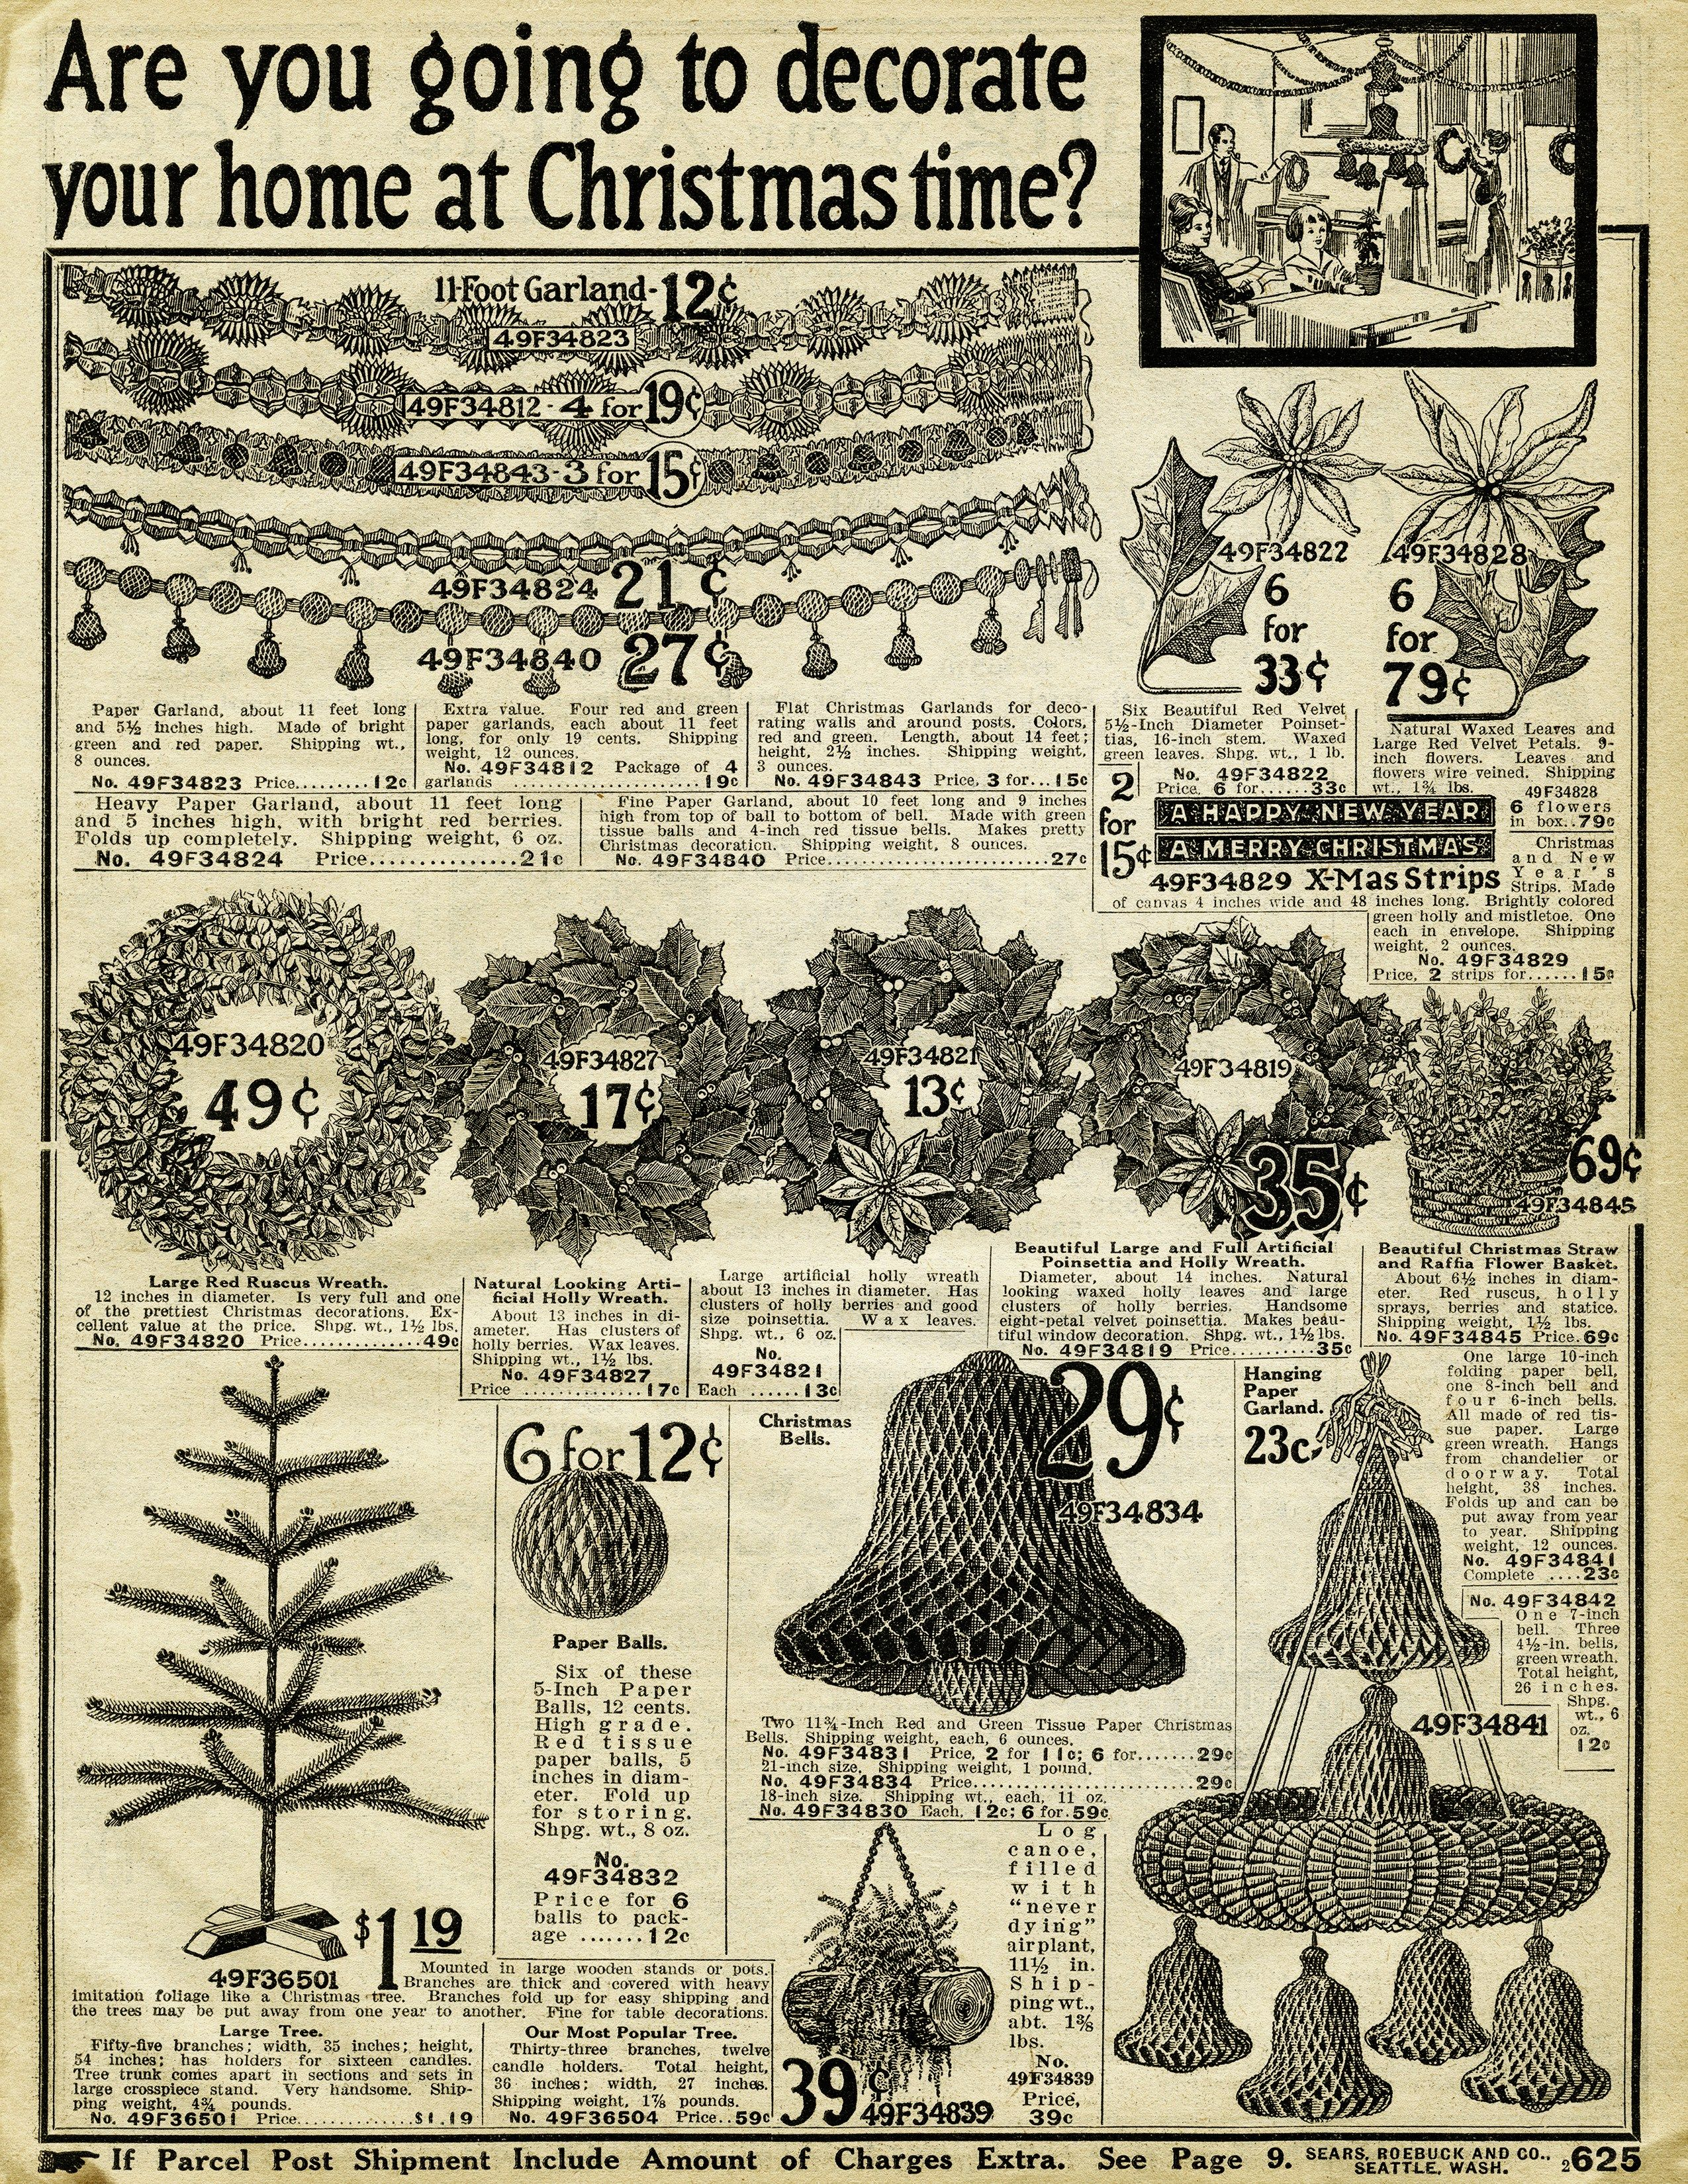 Vintage Christmas Printable Old Catalogue Page Antique Holiday Decorating Image Old Fashioned